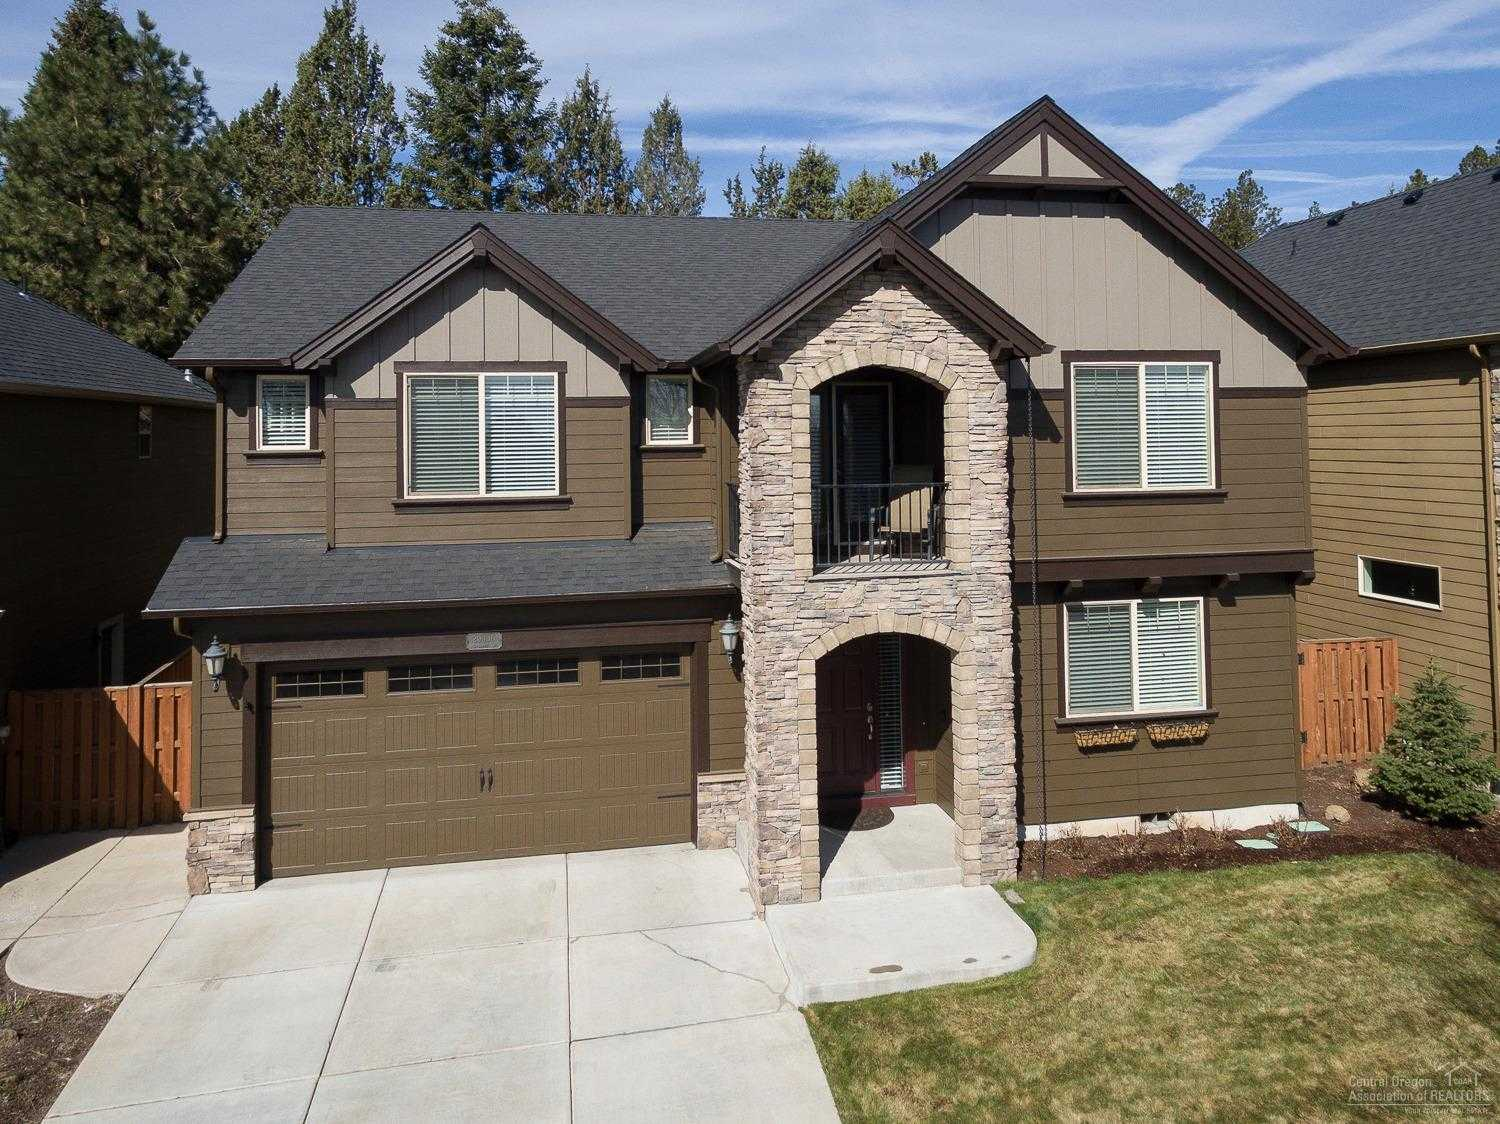 $519,500 - 5Br/3Ba -  for Sale in Bend